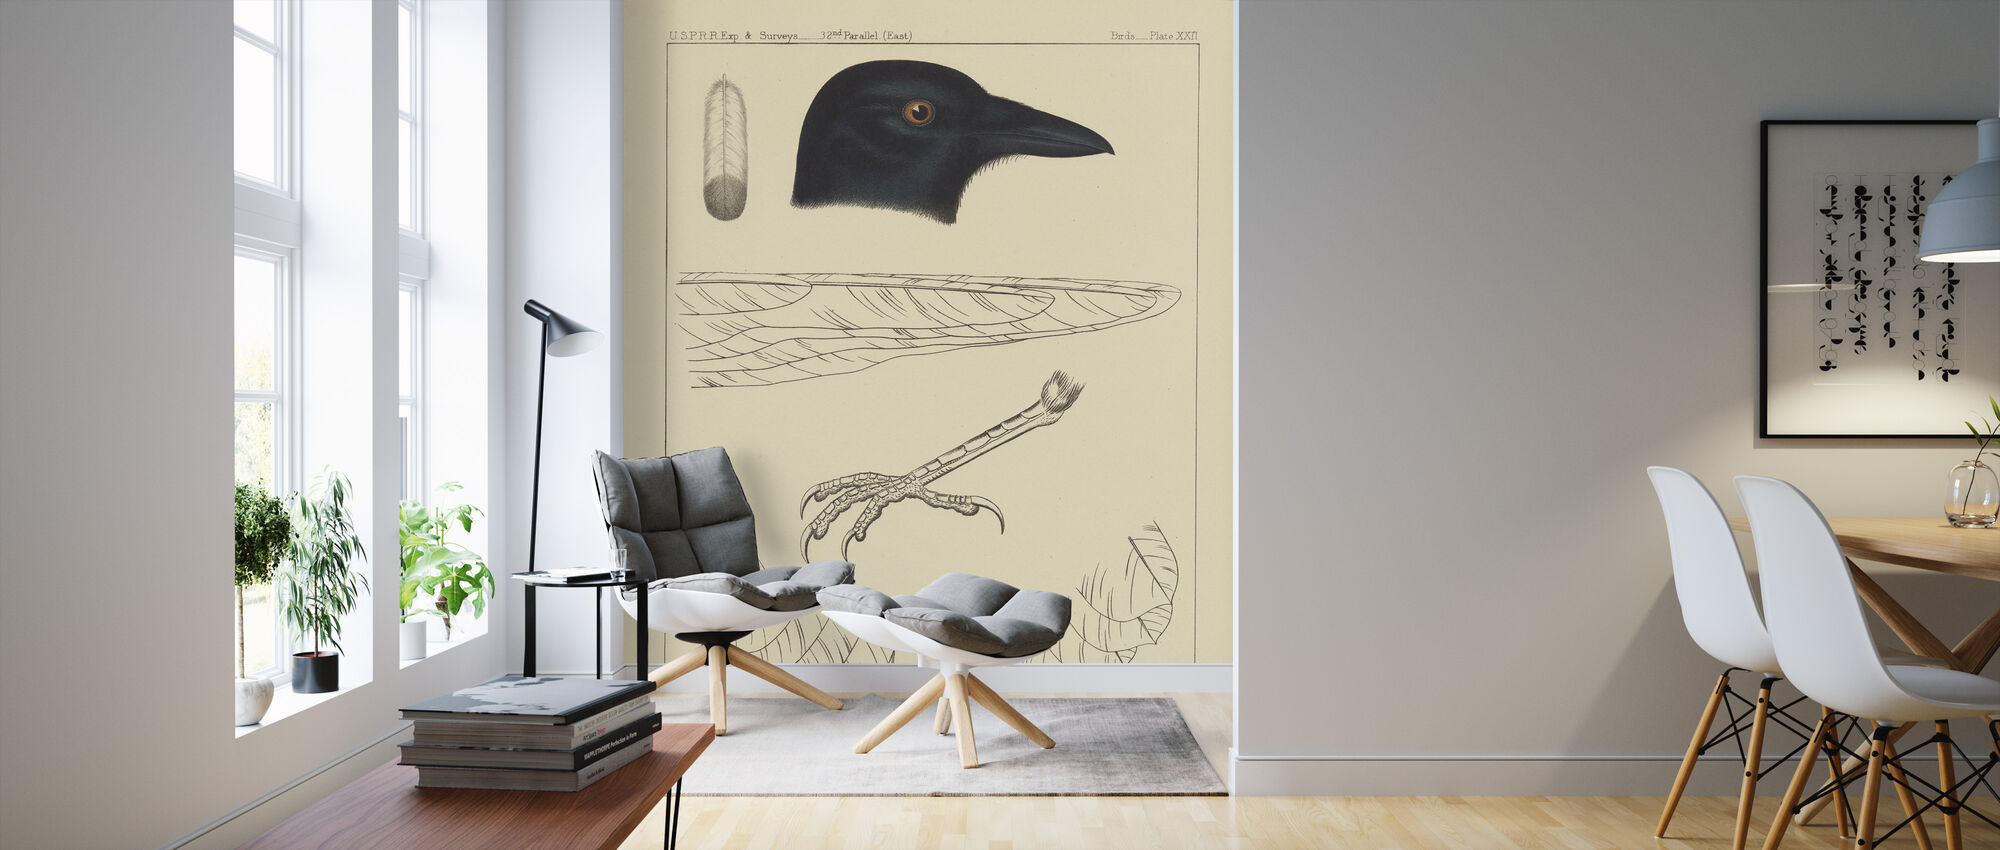 Bird Prints I - Wallpaper - Living Room